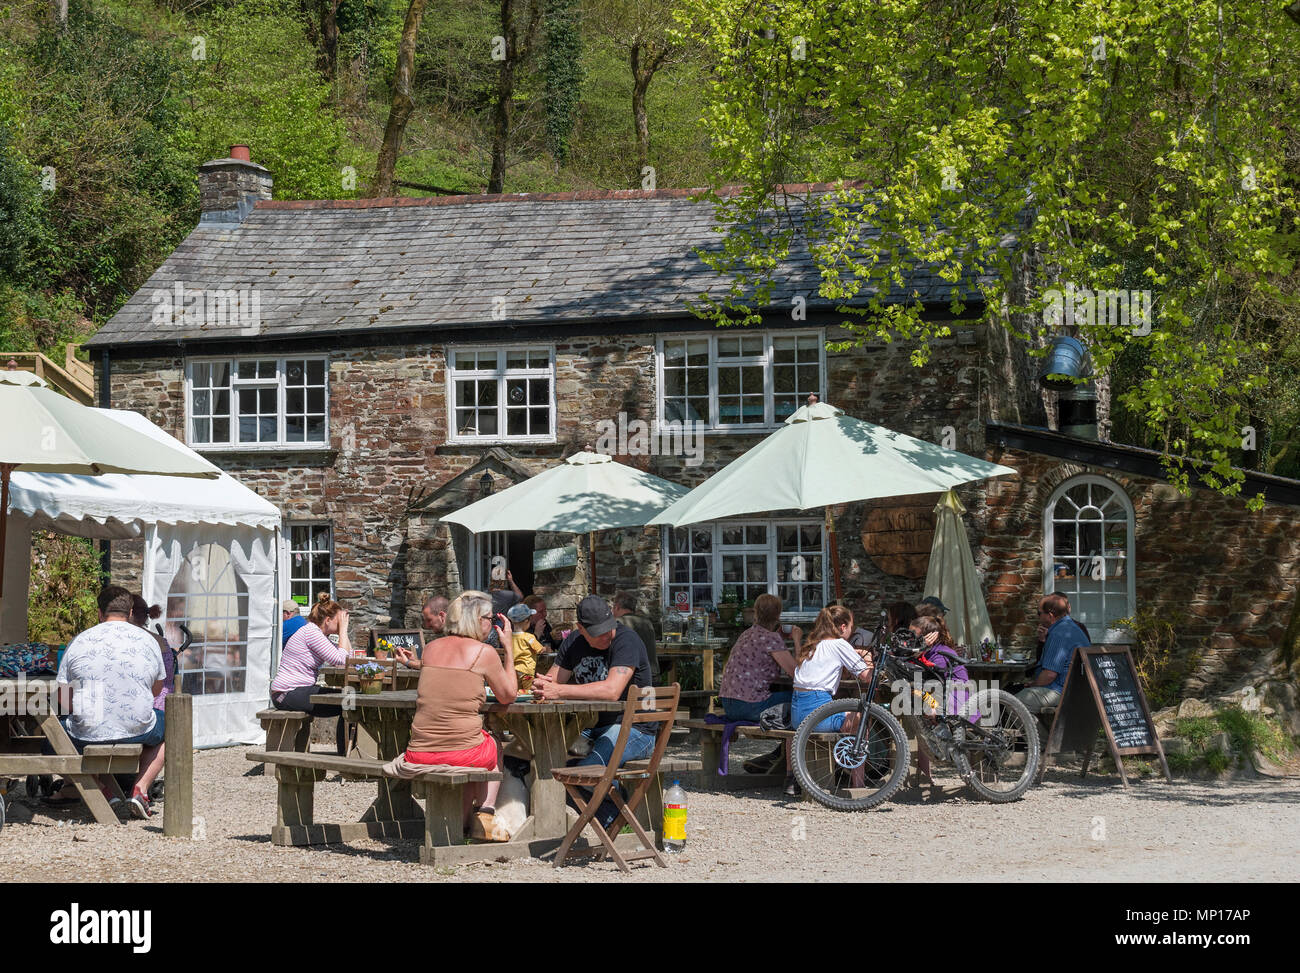 visitors, people, tourists at the cafe in cardinham woods, cornwall, england, britainb, uk, - Stock Image